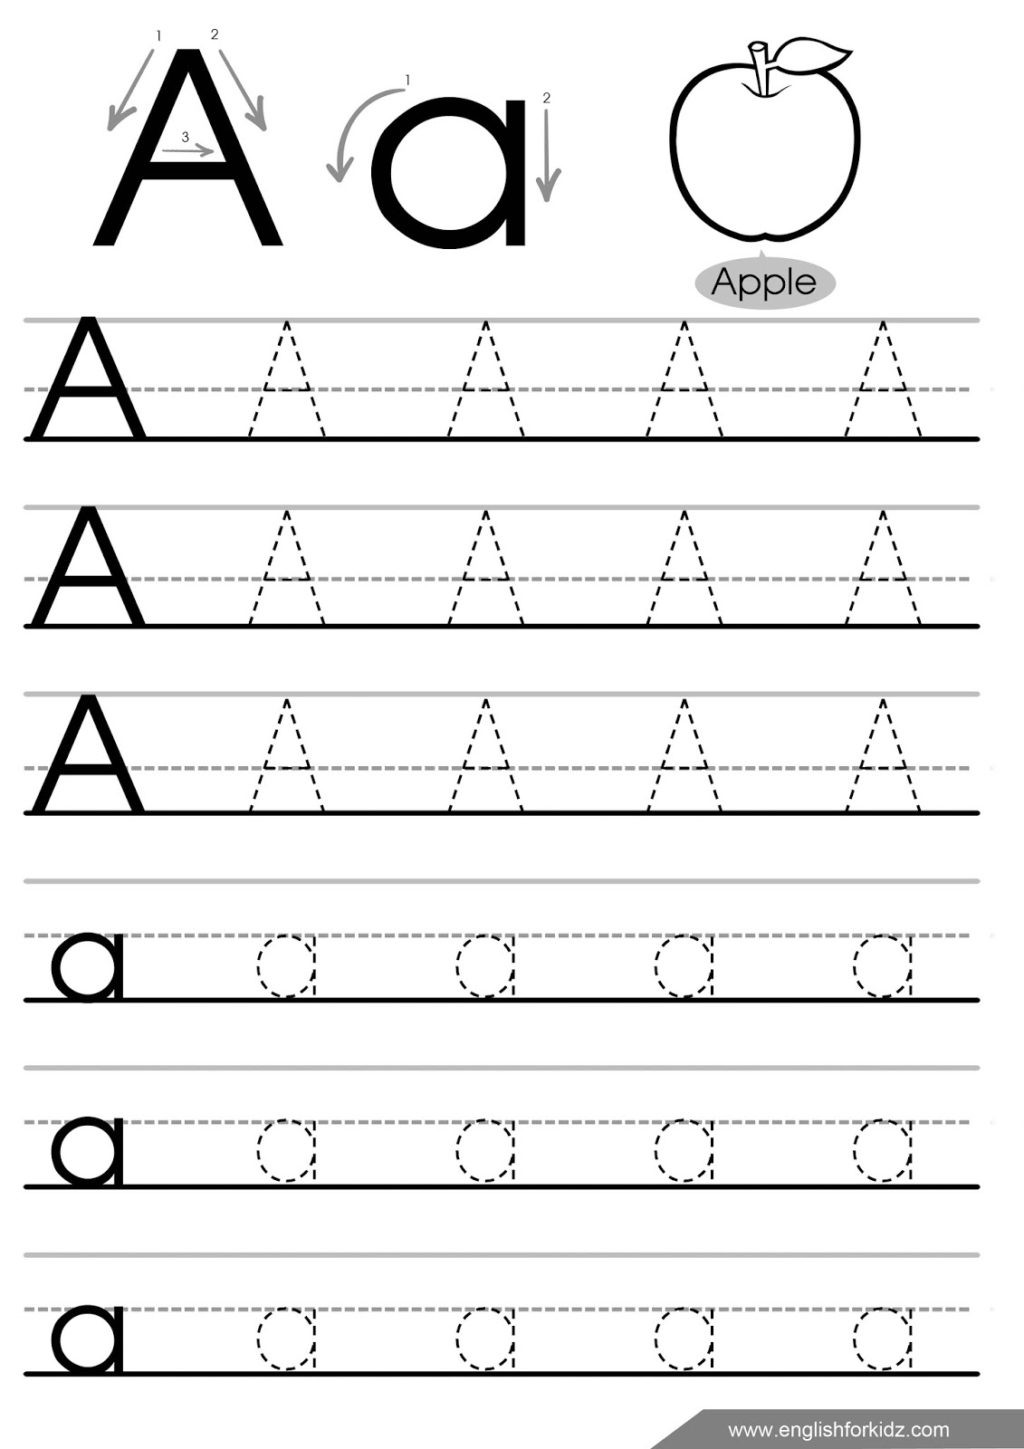 Free Printable Number Tracing Worksheets Worksheet Incredible Tracing Sheets Image Ideas Letter